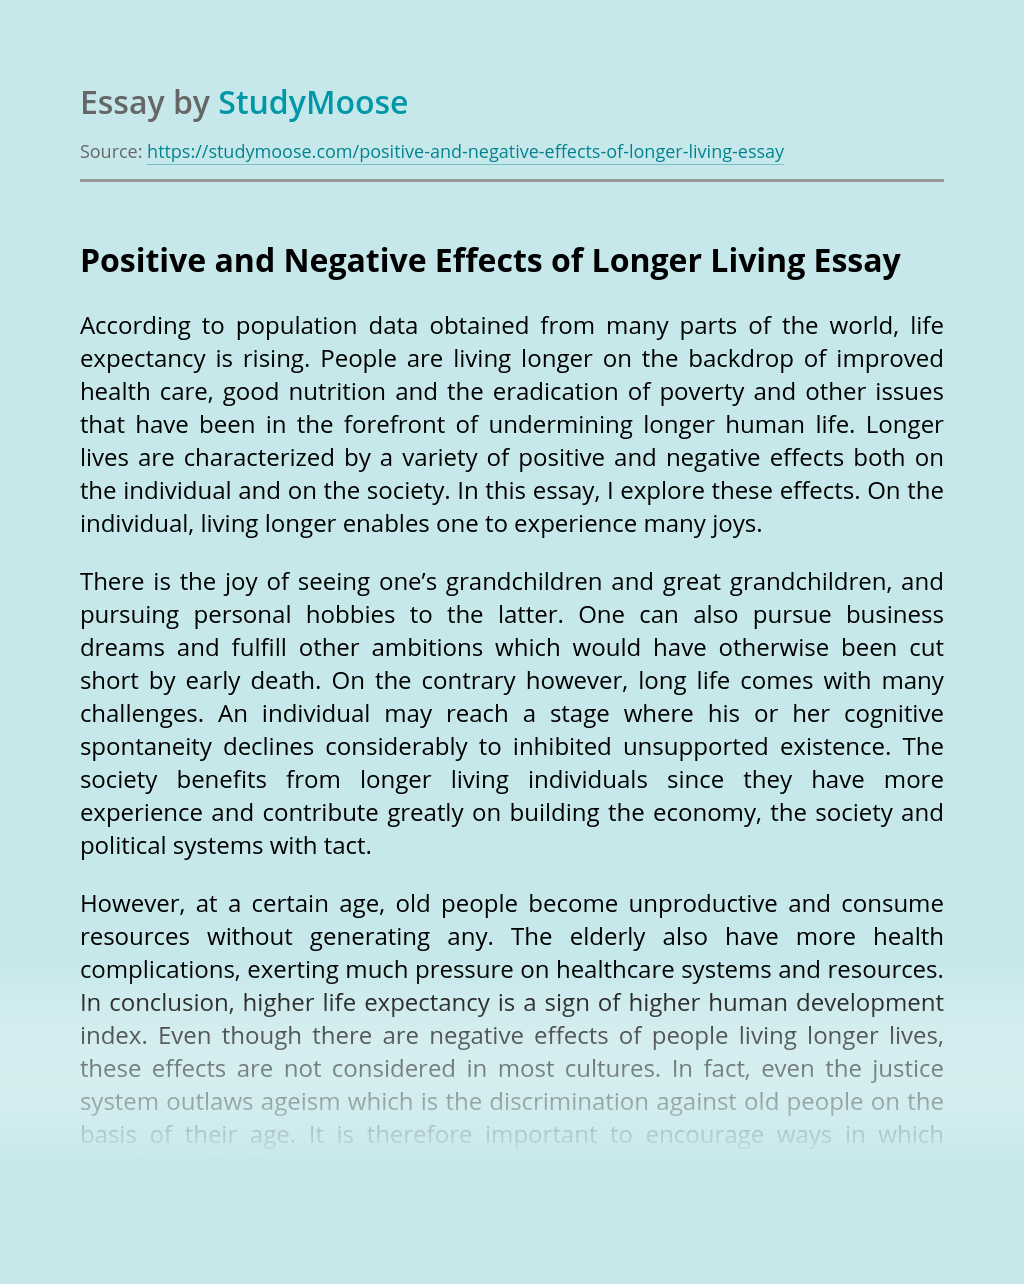 Positive and Negative Effects of Longer Living